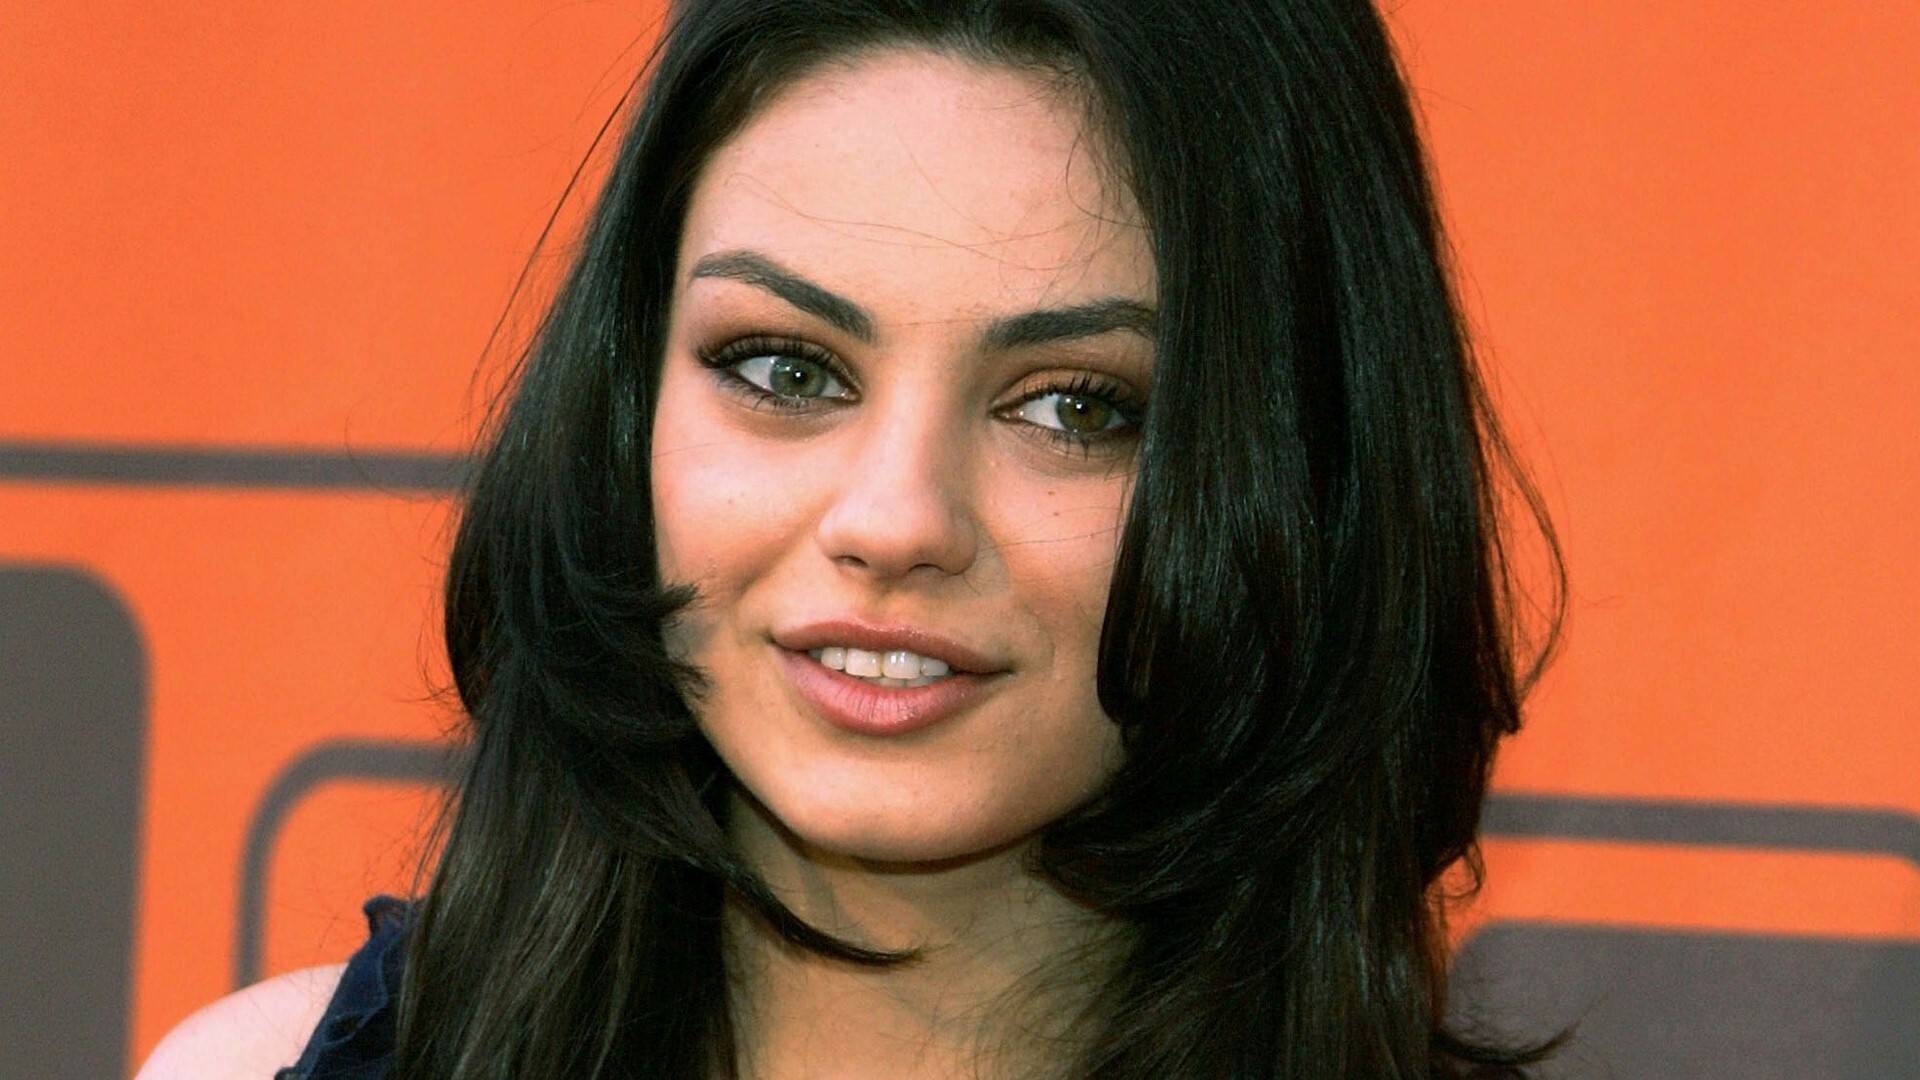 ... mila kunis downloads 1509 tags mila kunis actress celebrities heroine Mila Kunis